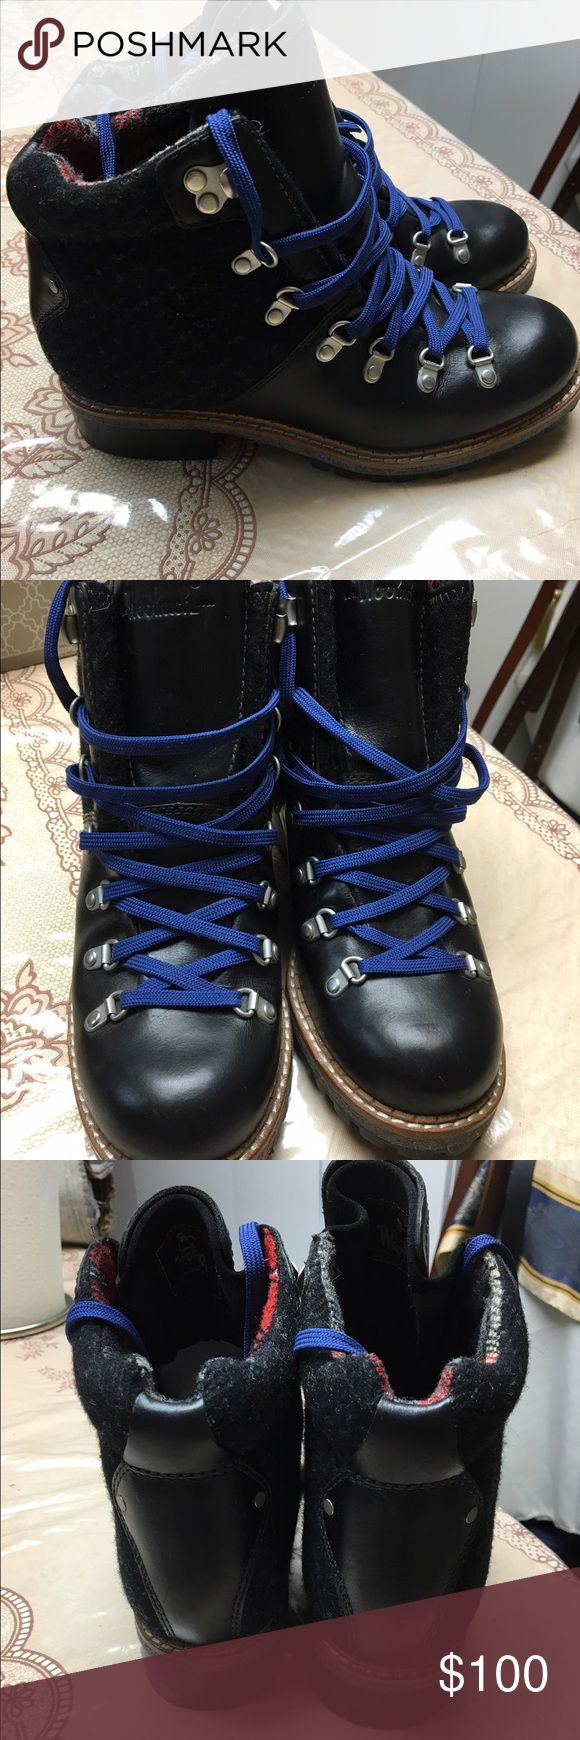 Woolrich Rockies Boots These are brand new with no box, they were in storage so have a few minor scratches/leather wrinkles. As you can see by the bottom these are some of the best built winter boots to buy! Woolrich Shoes Ankle Boots & Booties